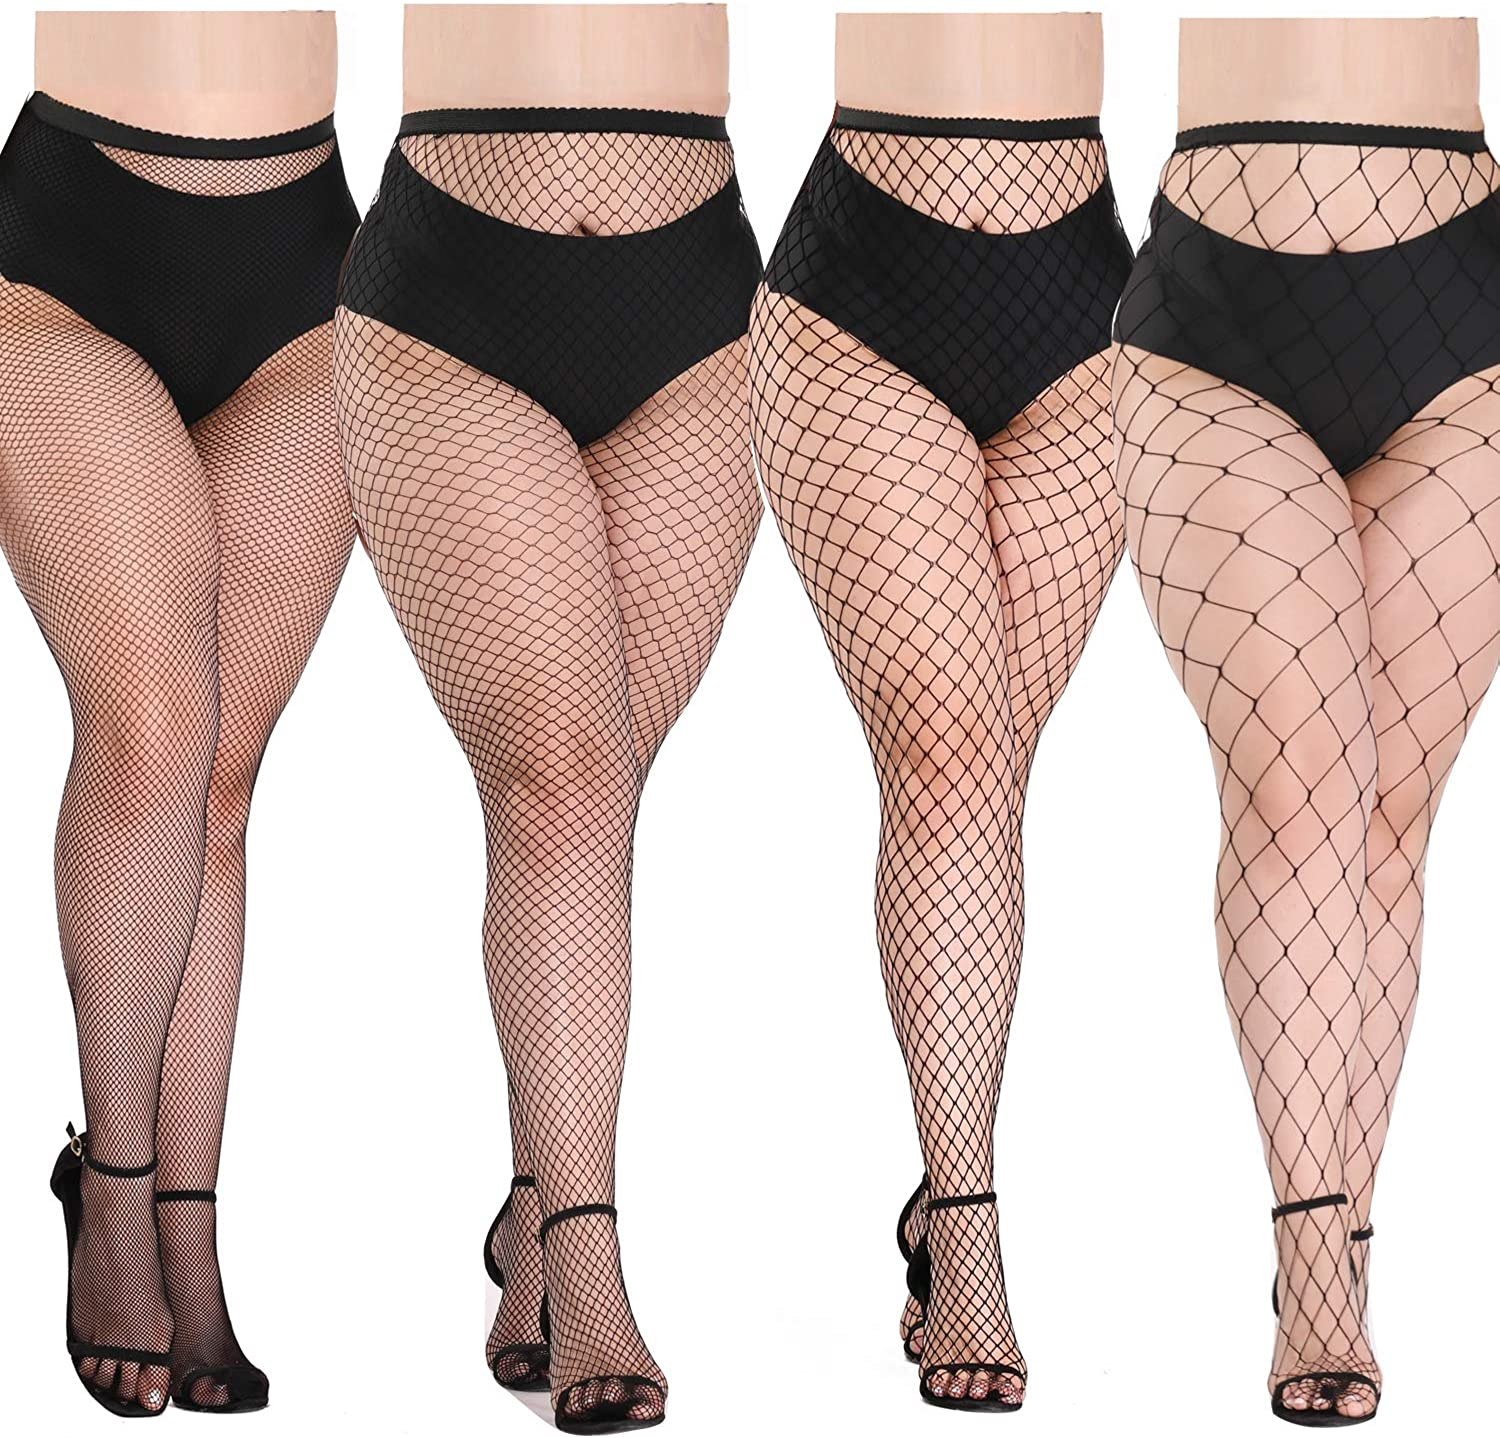 akiido High Waist Tights Fishnet Stockings Thigh High Stockings Pantyhose  (1-A--4Pairs1) at Amazon Women's Clothing store